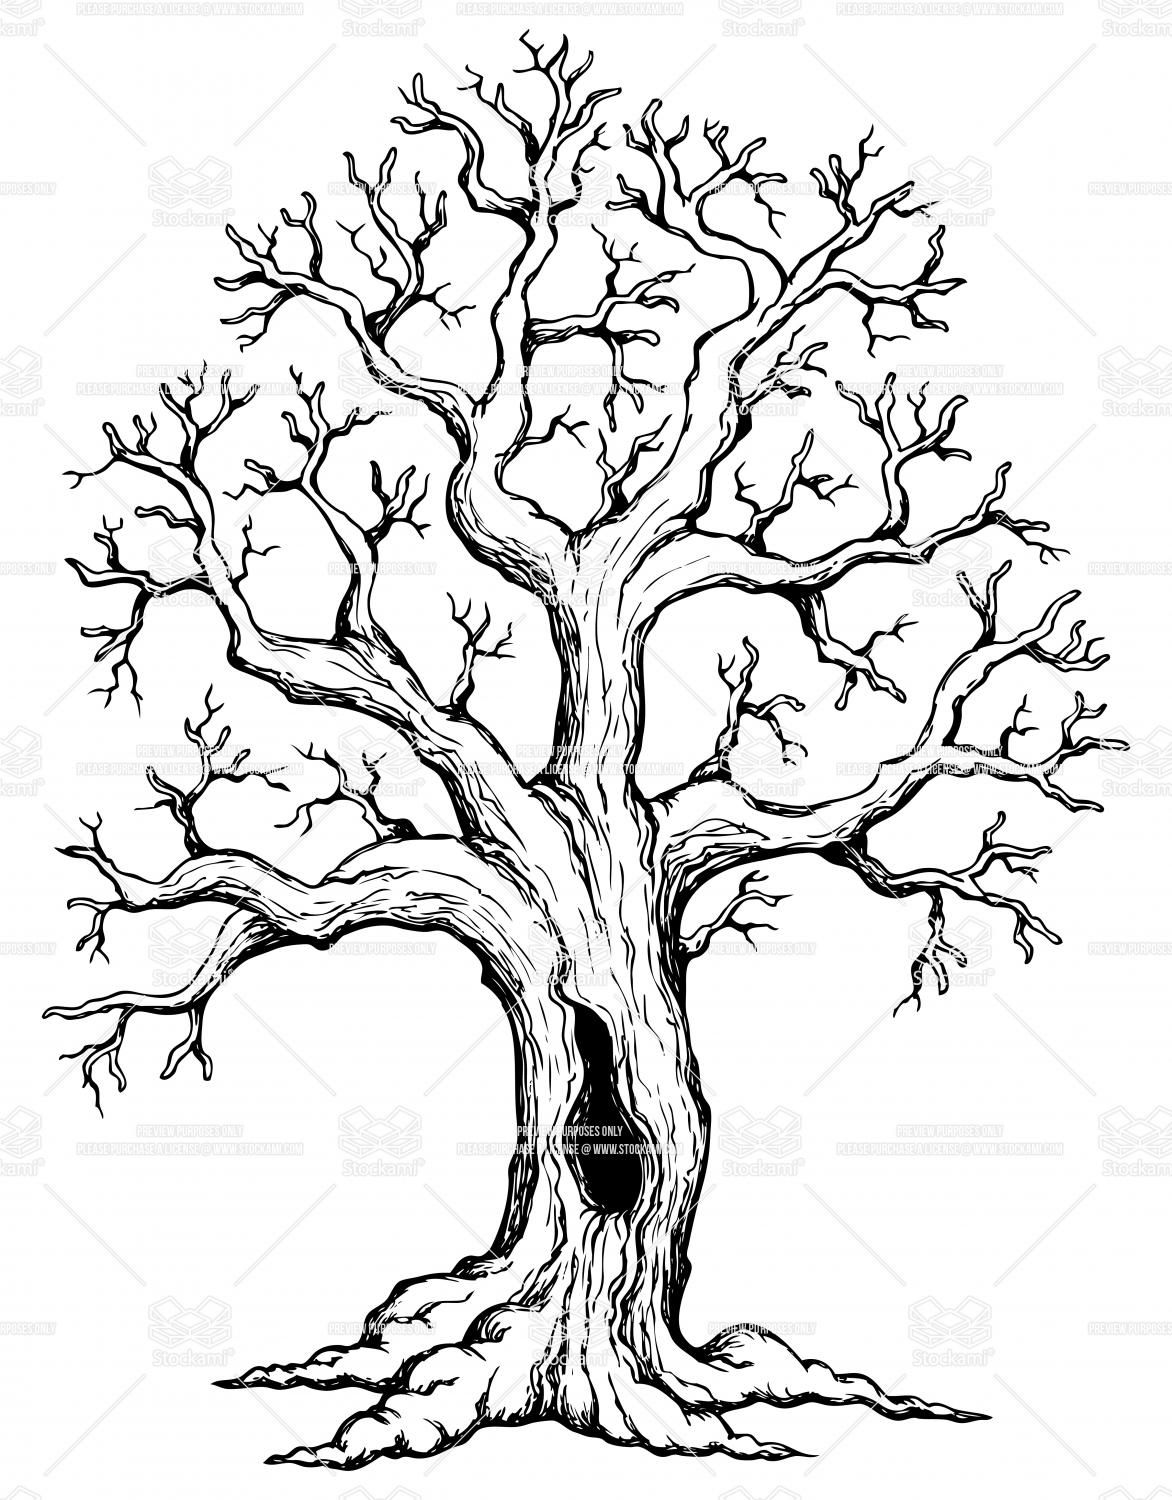 Oak tree drawings with roots illustrators description tree theme drawing 1 vector illustration